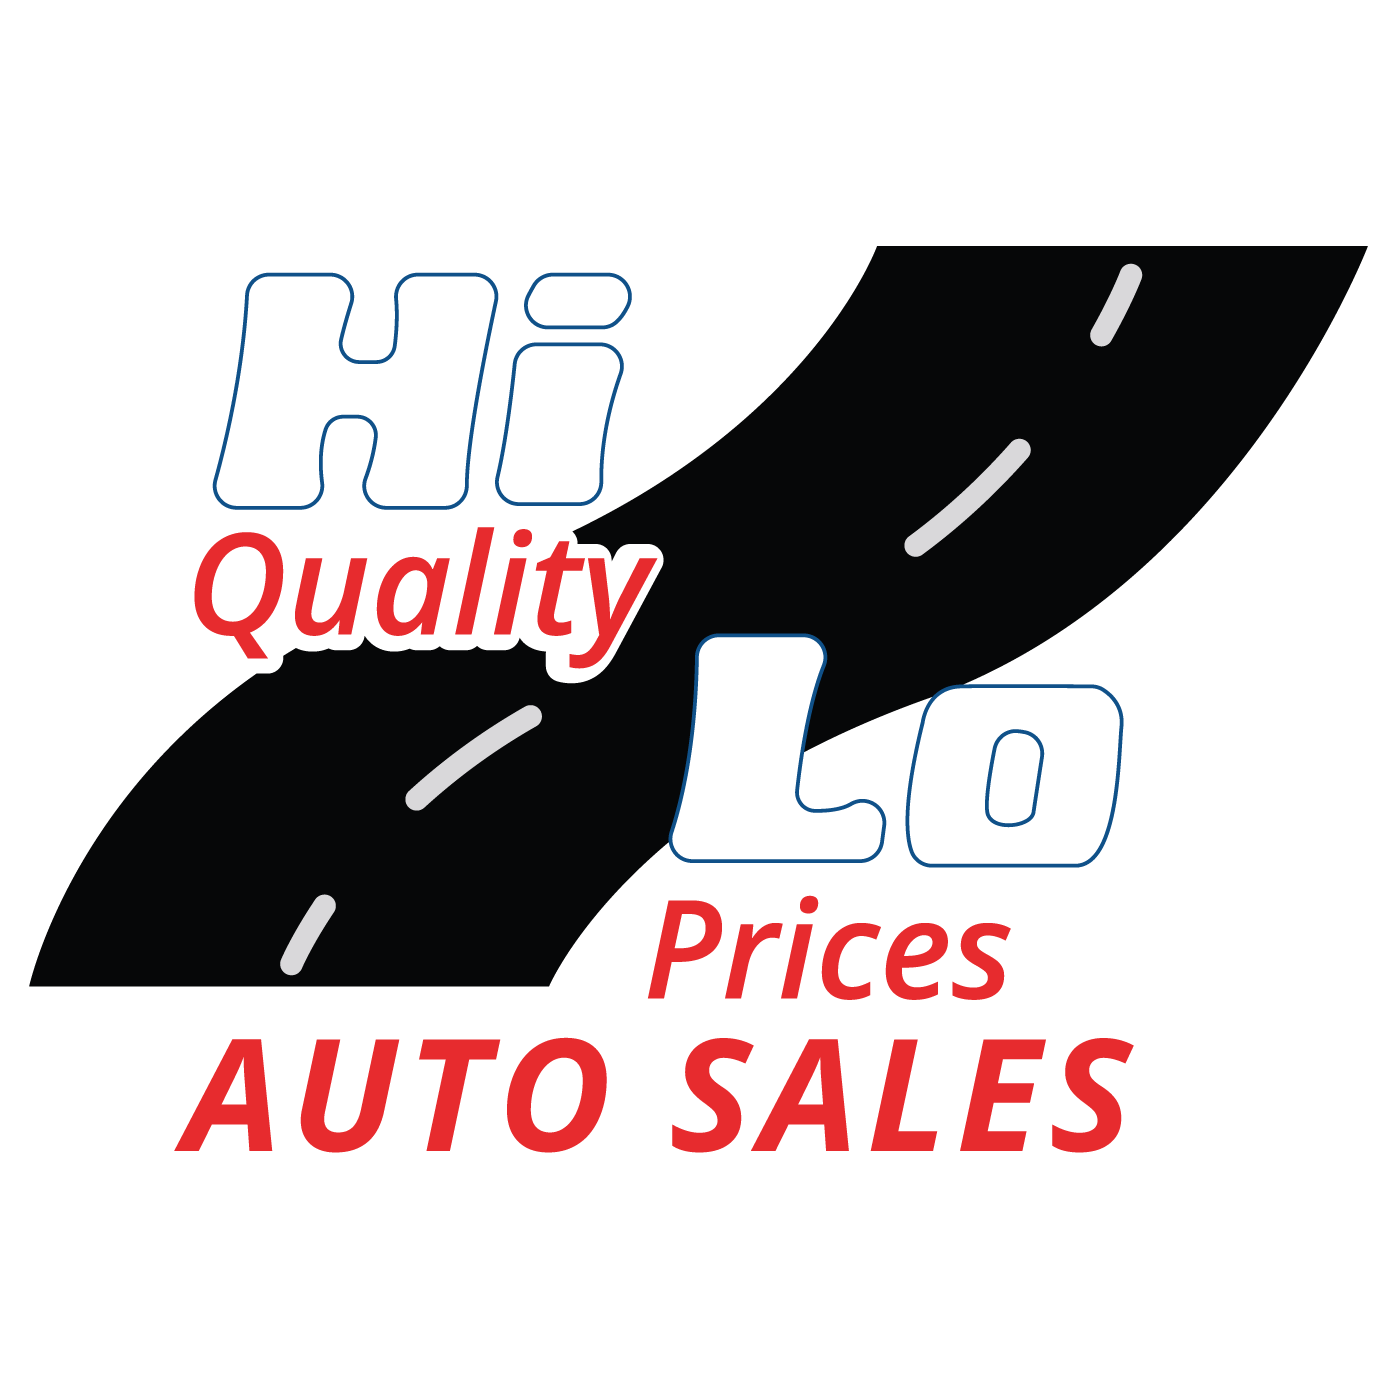 Used Car Dealers In Frederick Md >> Hi Lo Auto Sales & Service - 40 - Frederick, MD - Company Information